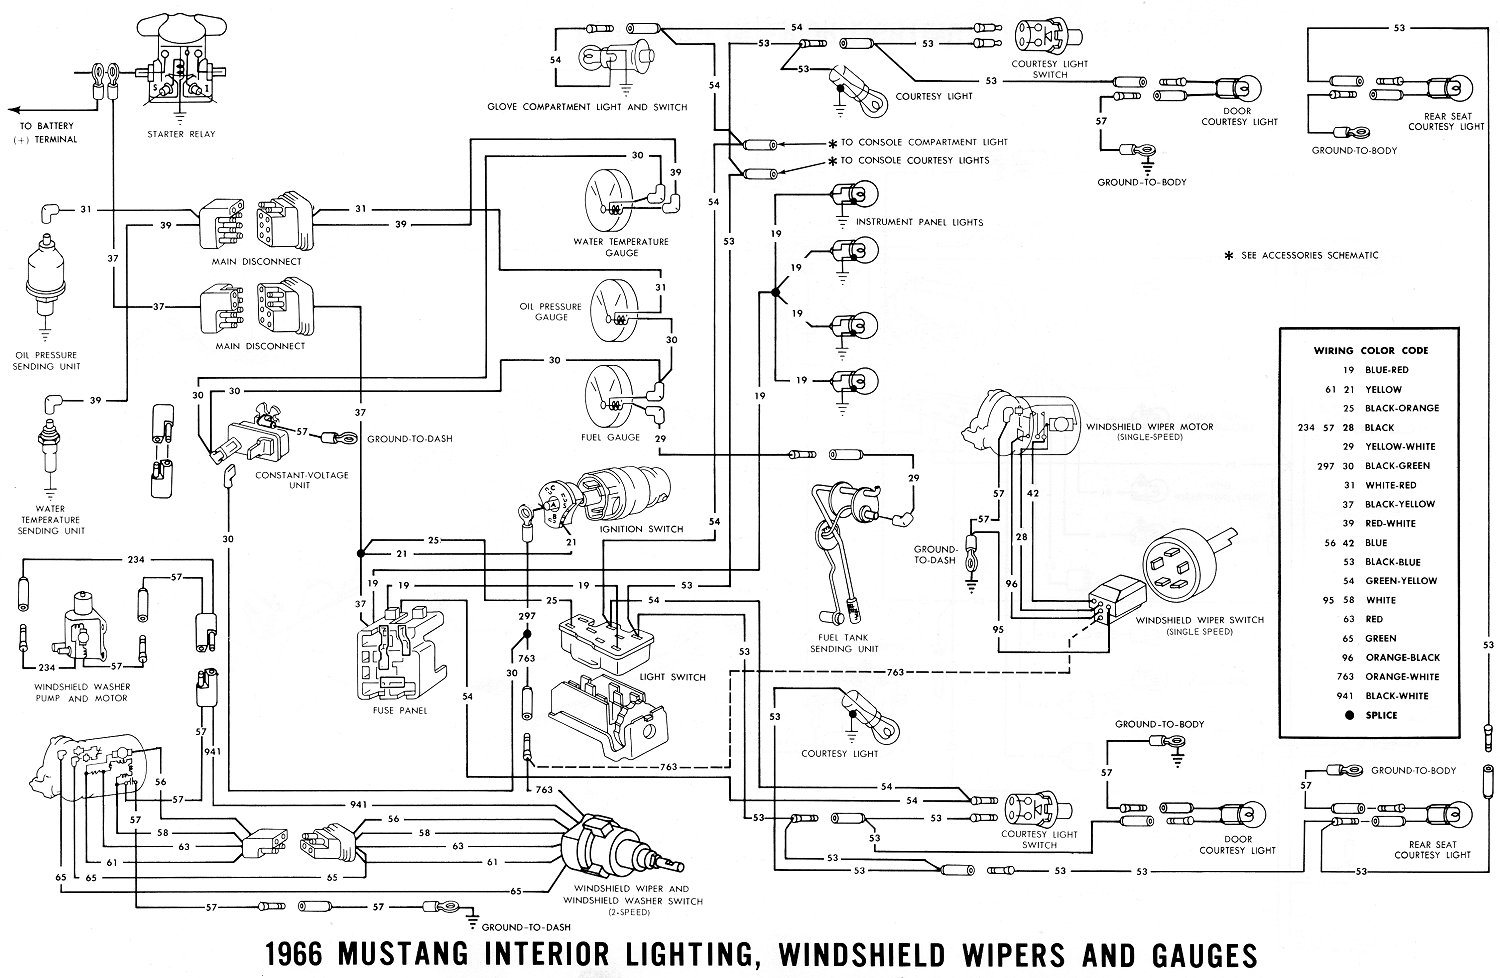 1966 mustang lighting wiring diagram wiring schematics diagram rh  mychampagnedaze com 69 Camaro 67 Cougar XR7 Convertible